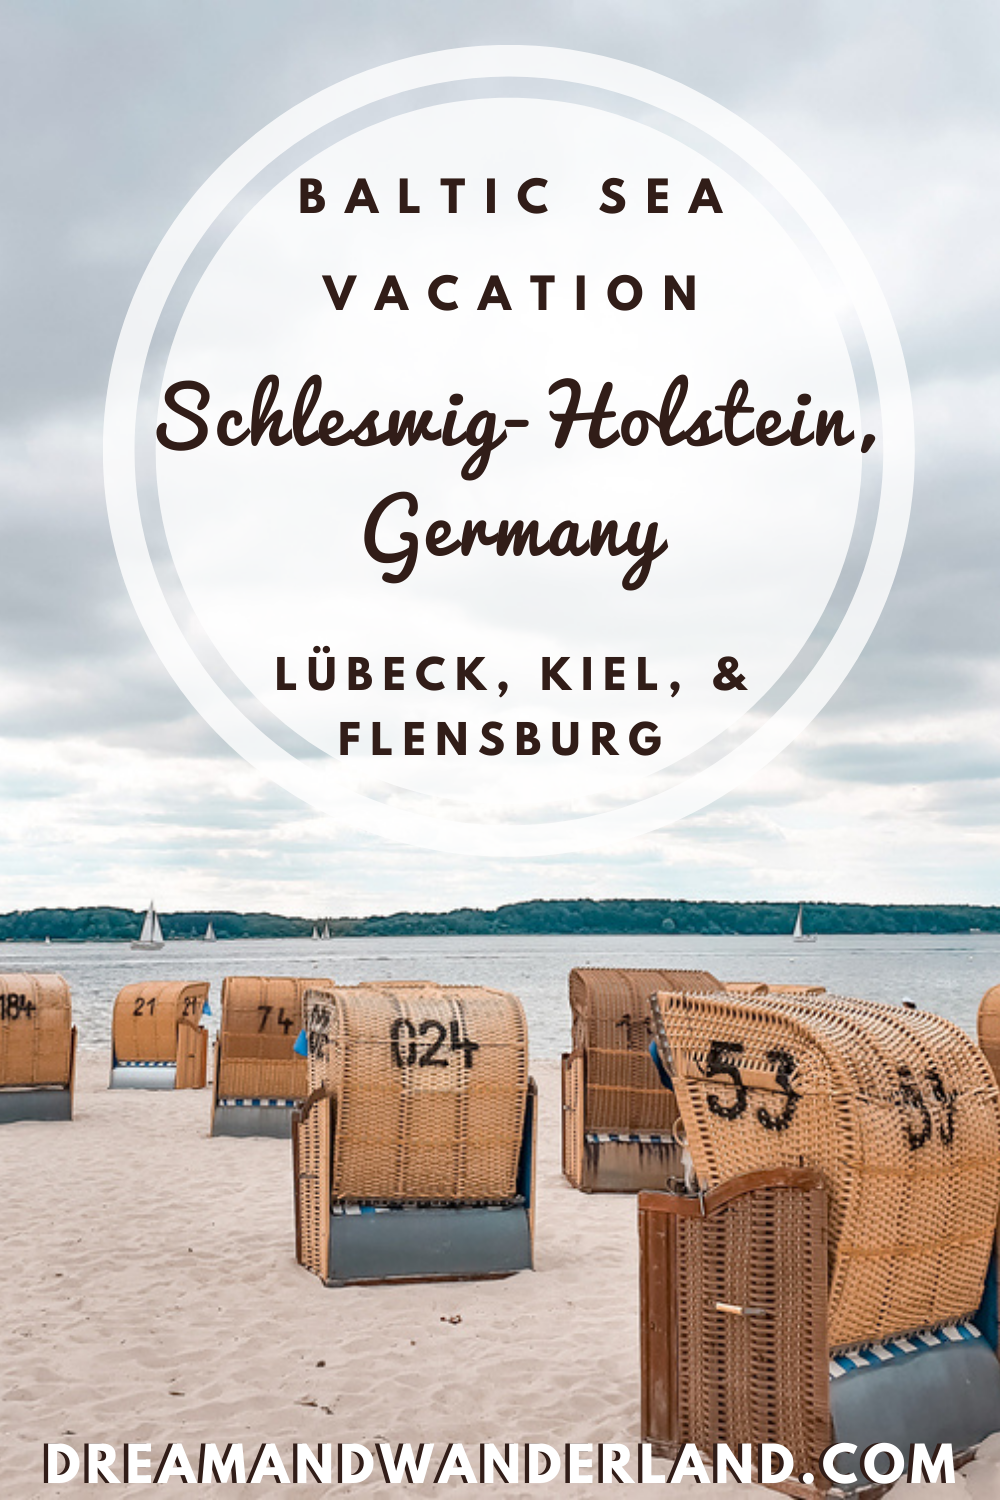 Travel Baltic Sea in Schleswig-Holstein, Germany, and find stunning places and awesome things to do! Have a blast on your German vacation getaway! #thingstodo #holiday #roadtrip